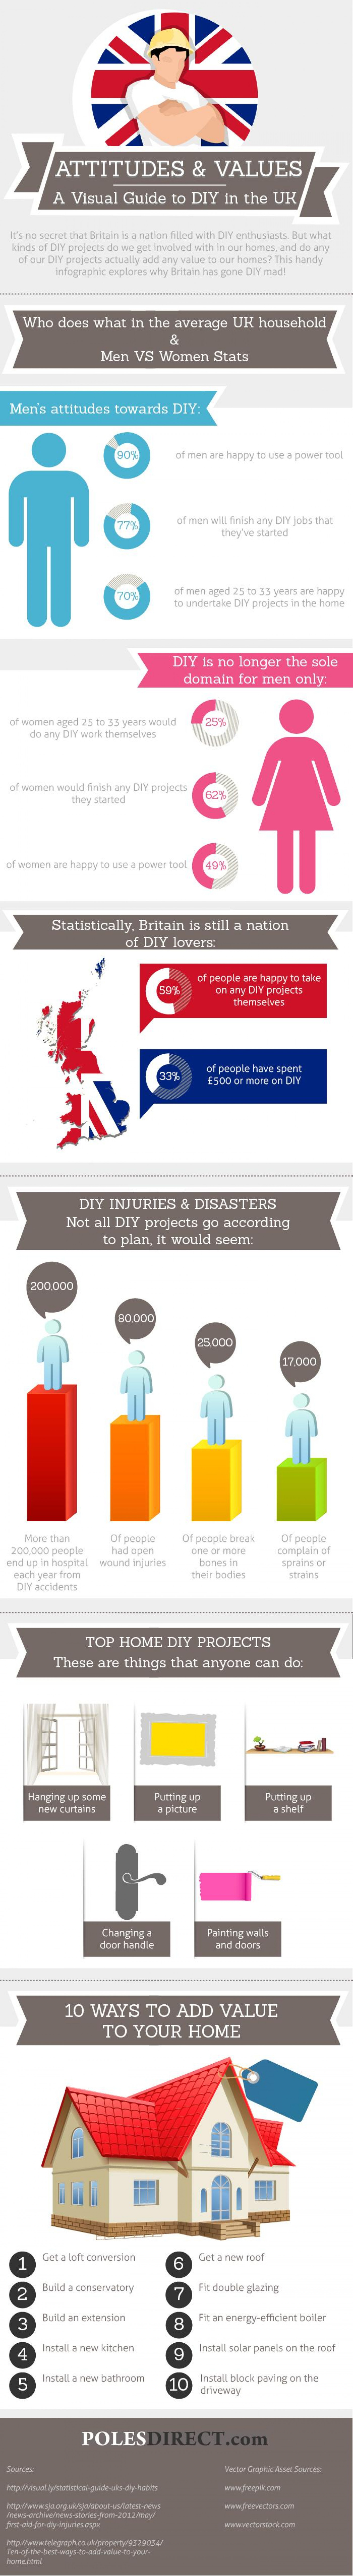 Attitudes & Values: A Visual Guide to DIY in the UK Infographic